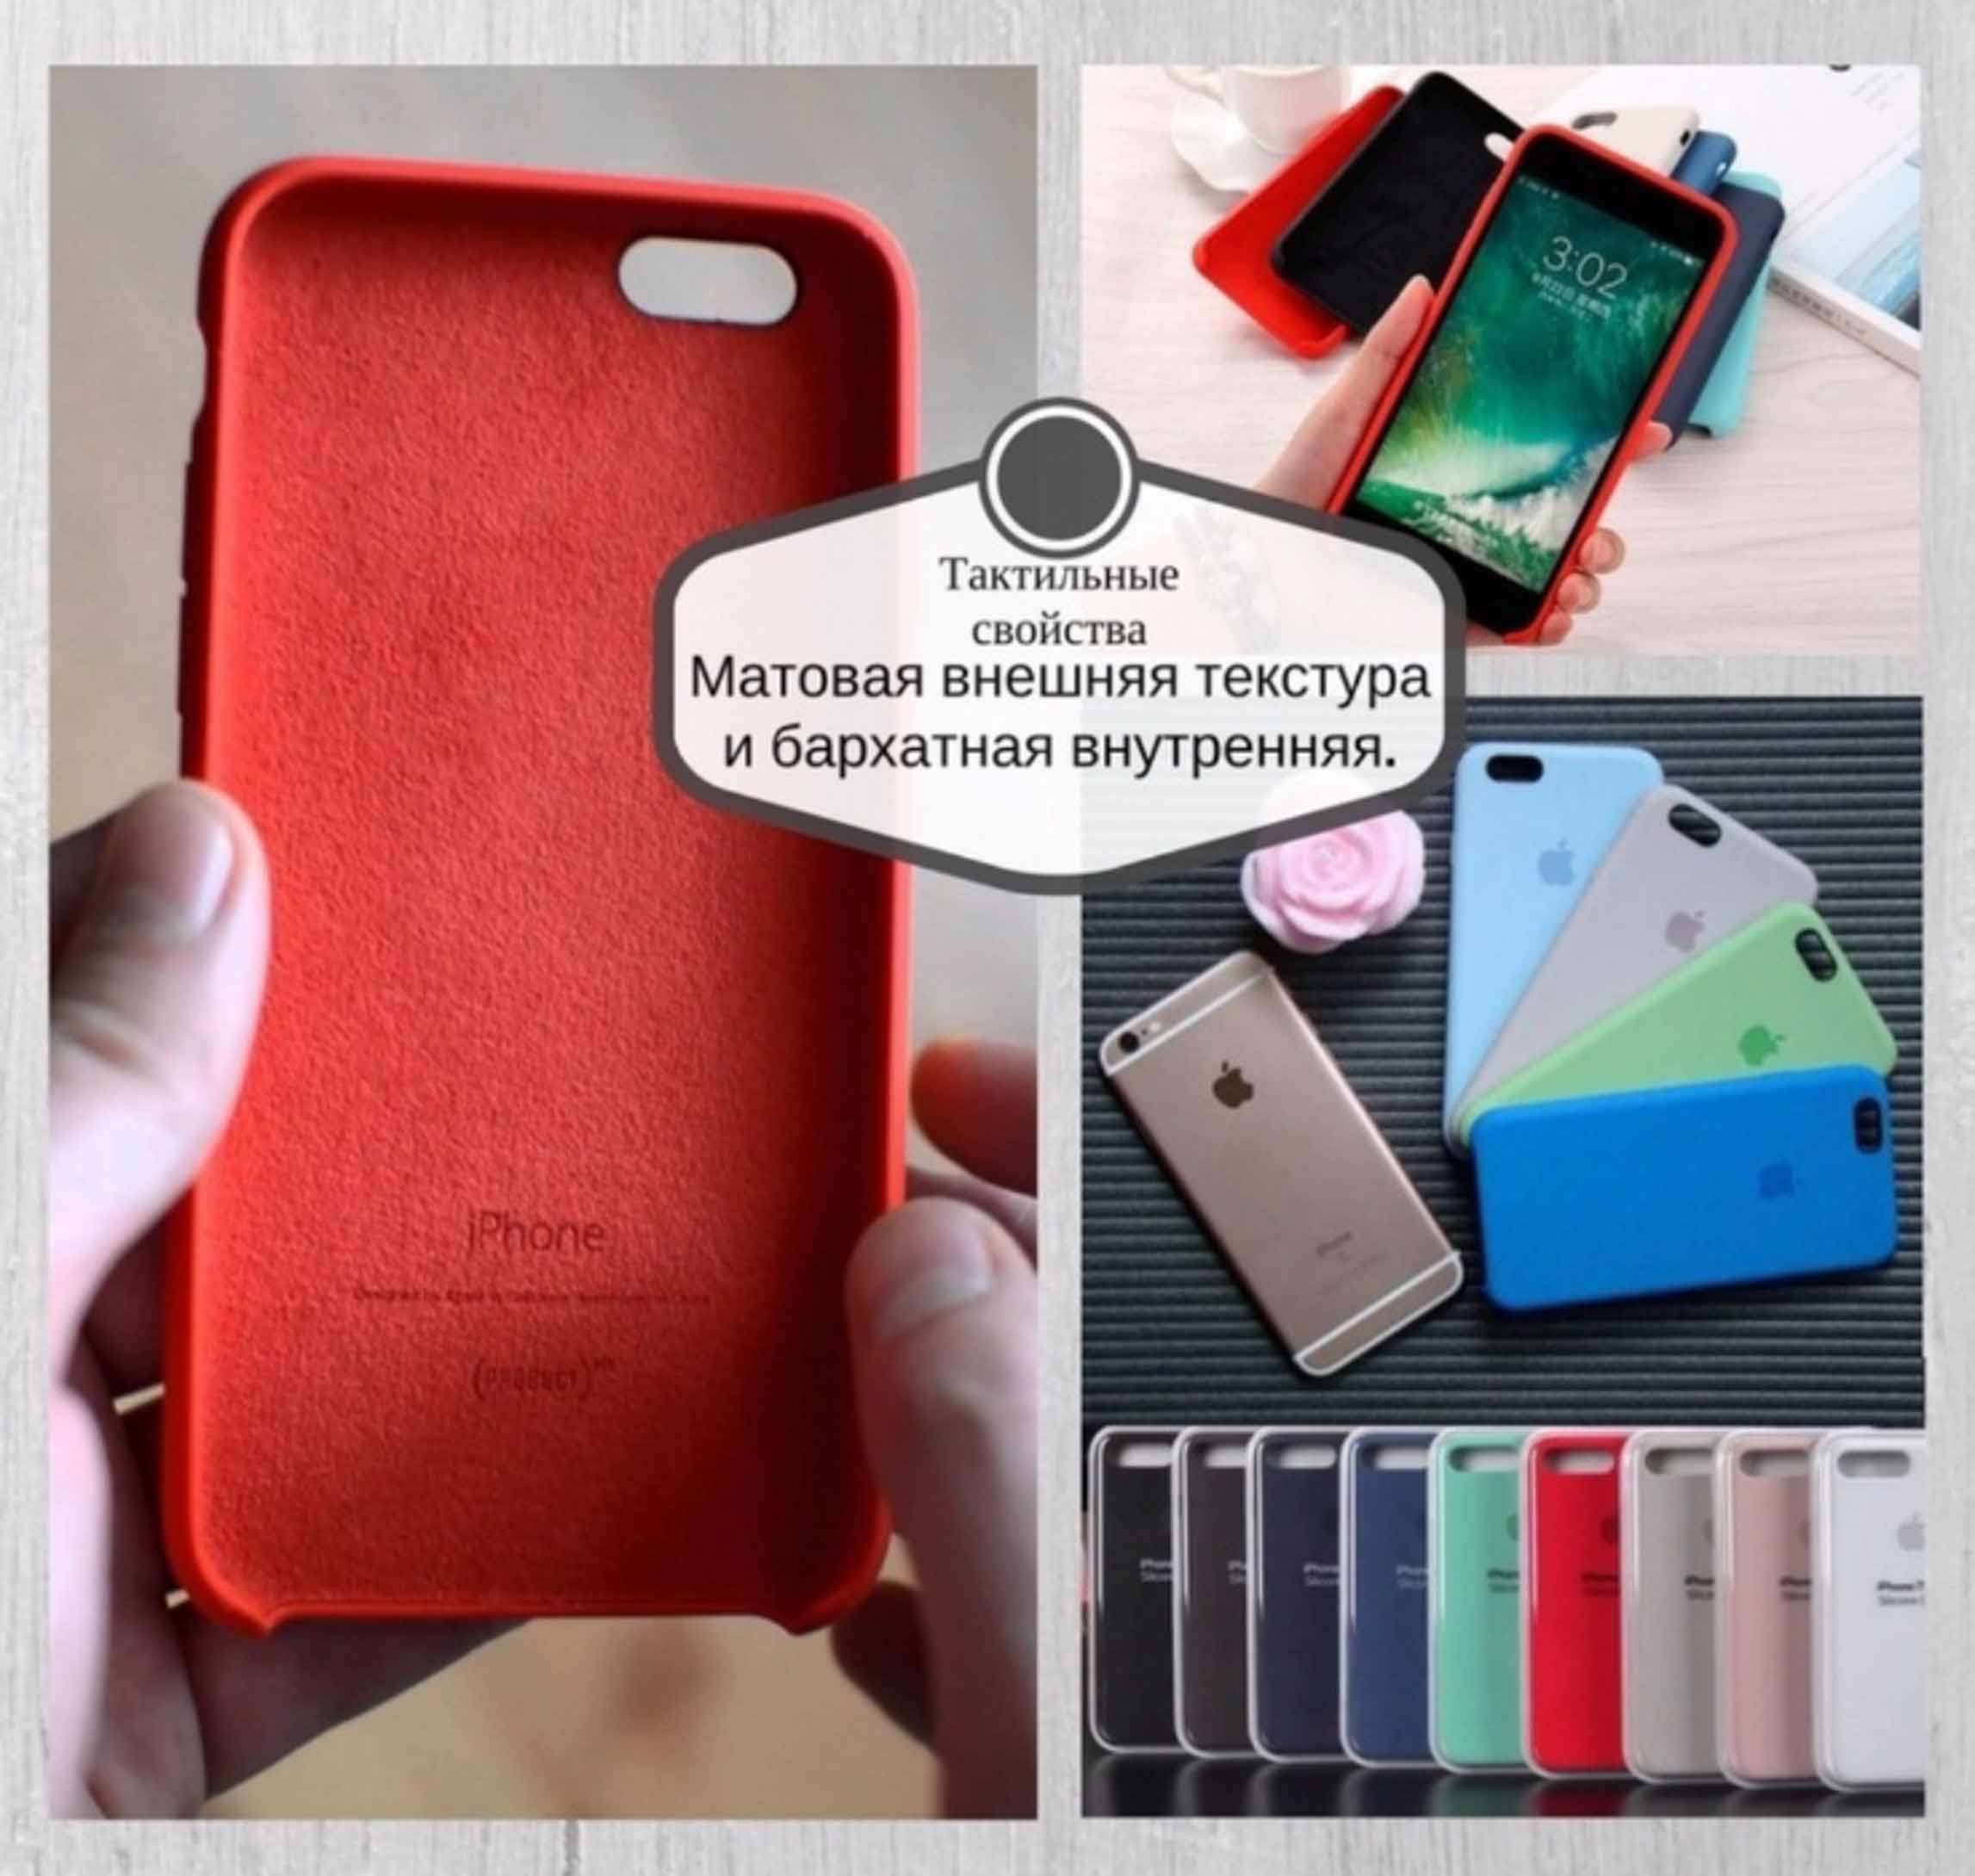 Чехол на Айфон, Apple Silicone Case іPhone - 5/5s/6/6s/6+/7/7+/8/8+/X фото 3